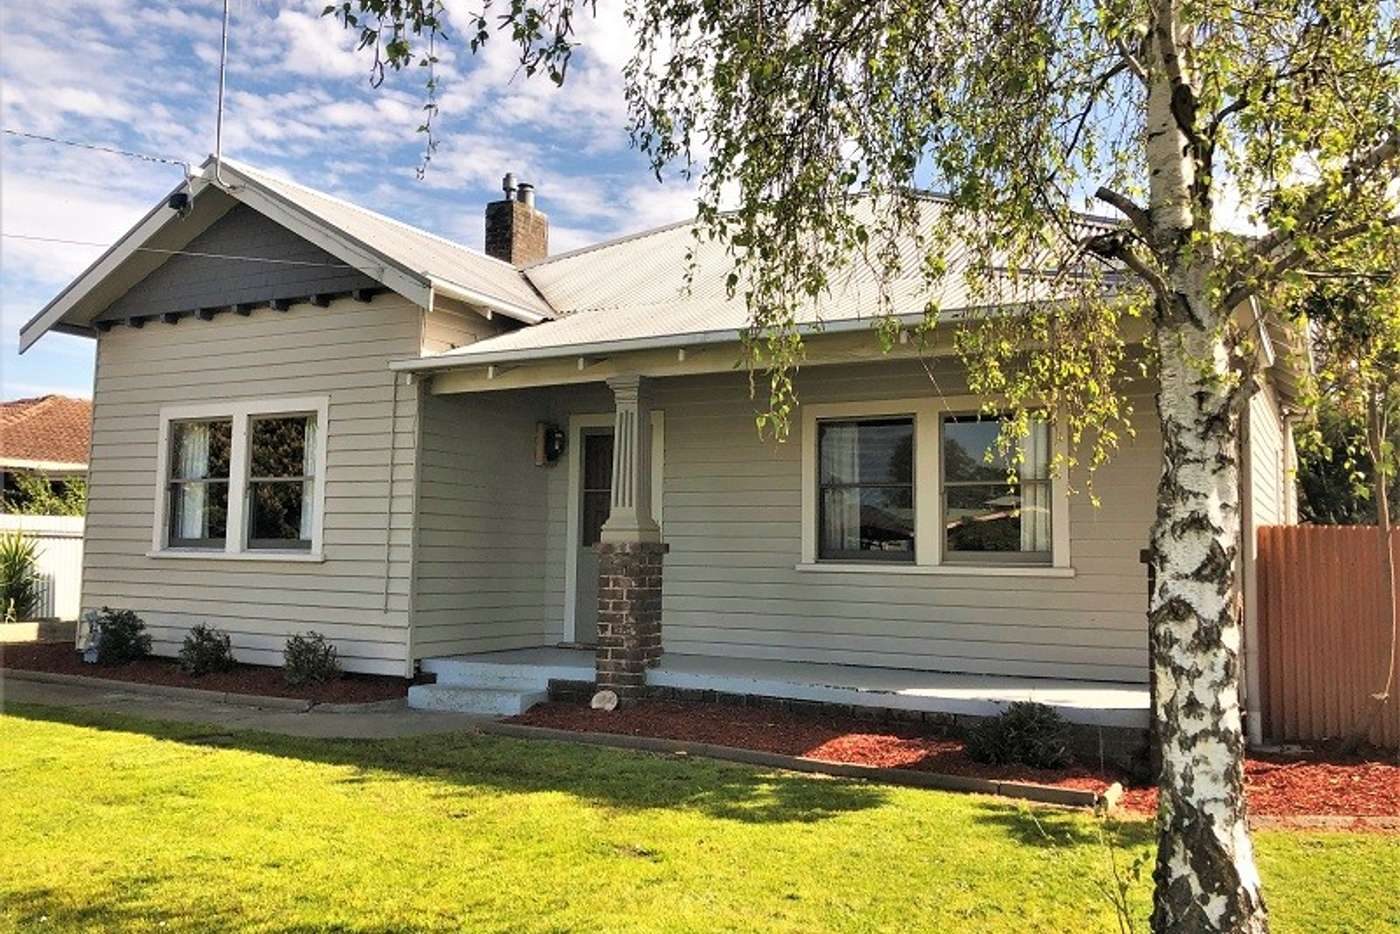 Main view of Homely house listing, 47 Polwarth Street South, Colac VIC 3250